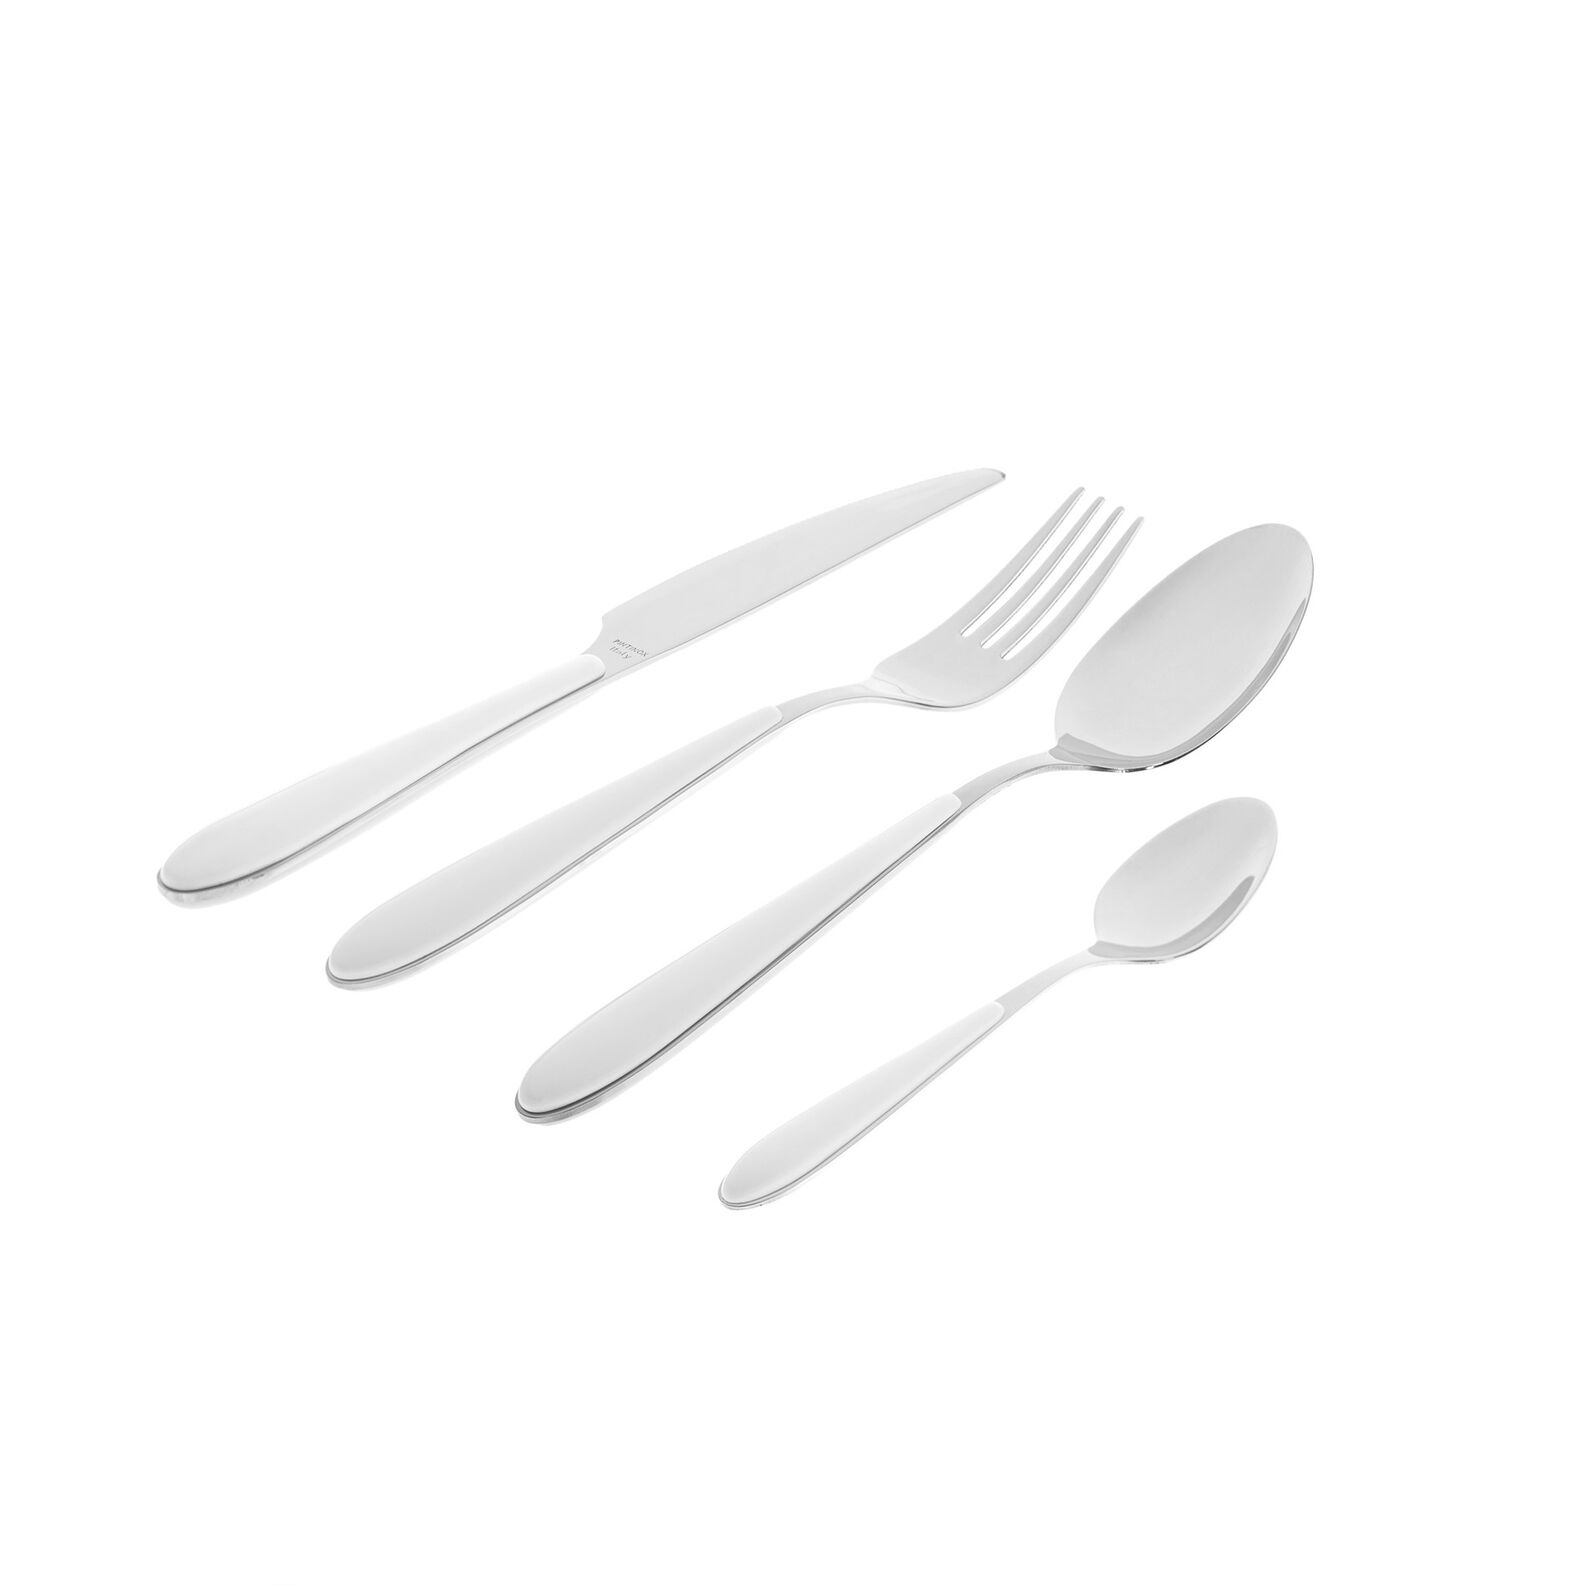 Stainless steel and plastic cutlery line